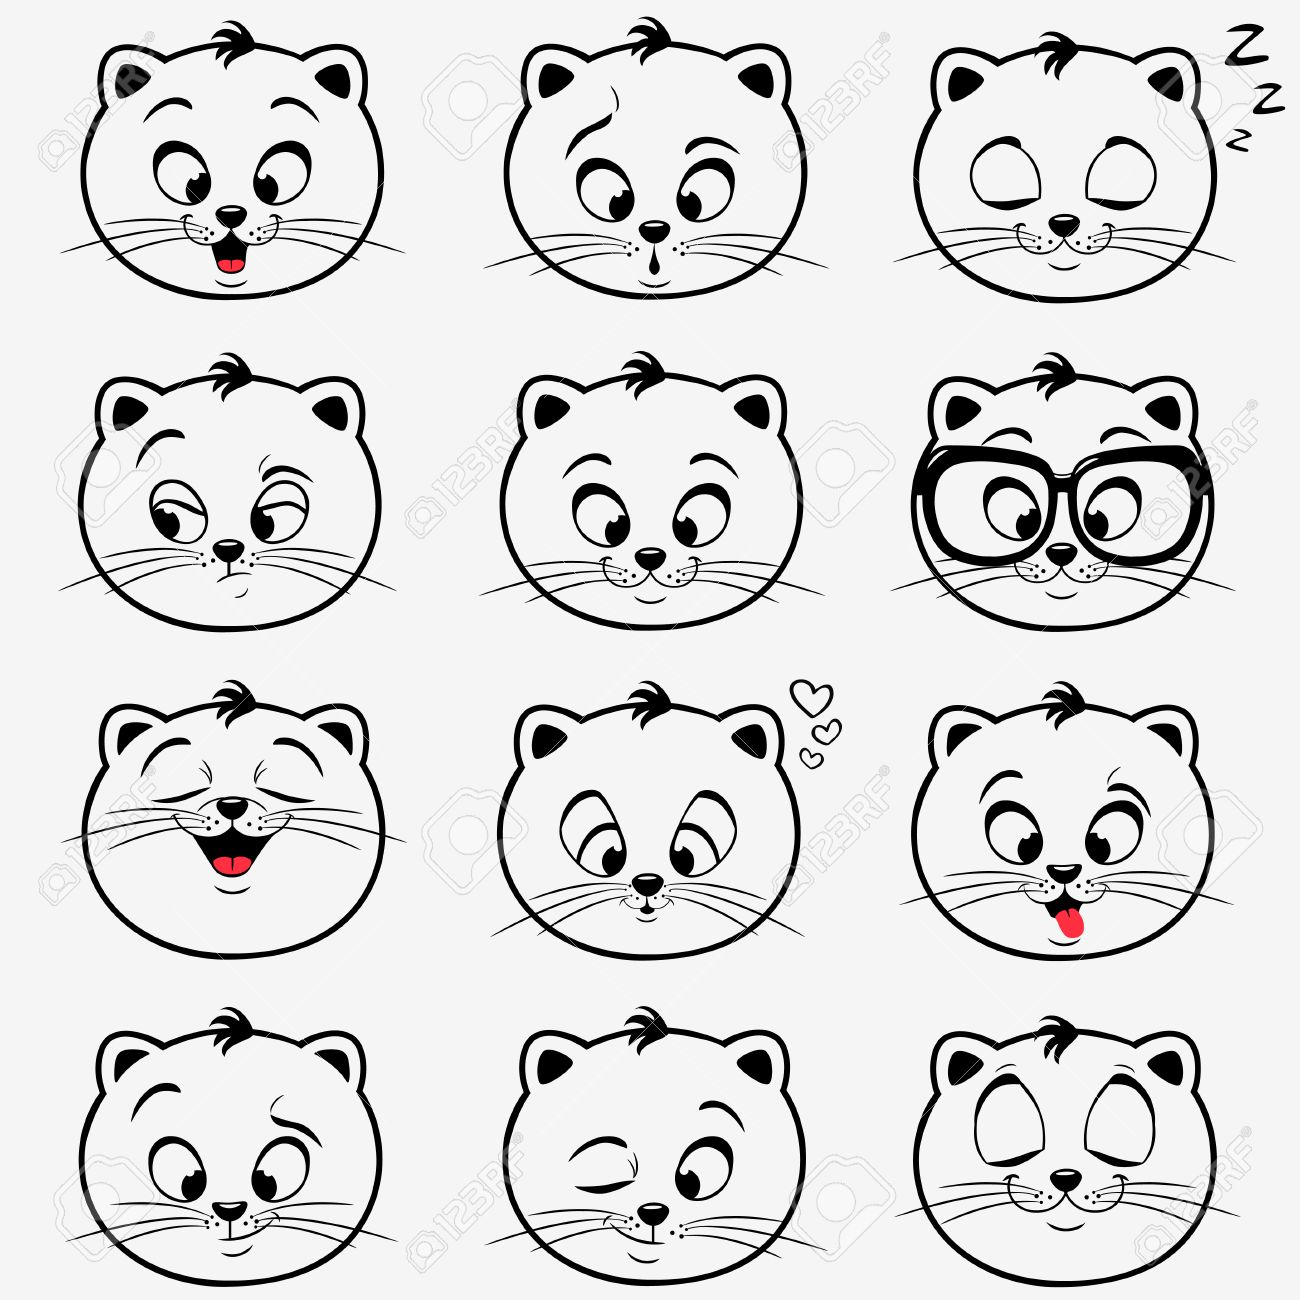 Illustration Of Funny Emoticons Kittens Royalty Free Cliparts ...